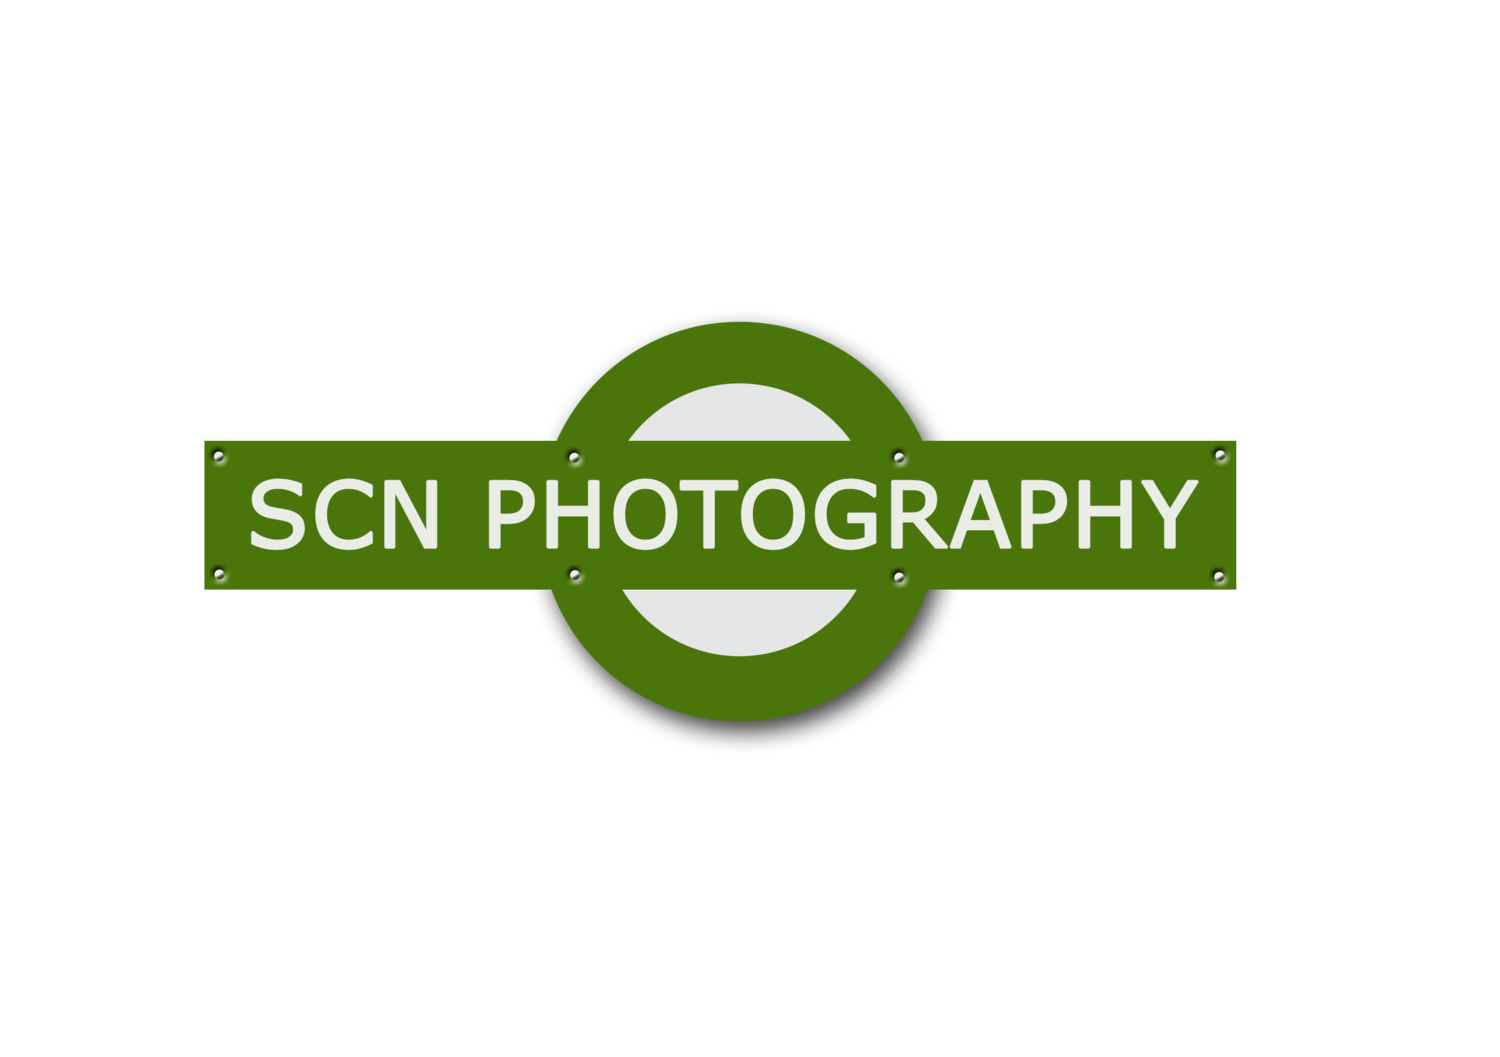 SCN Photography